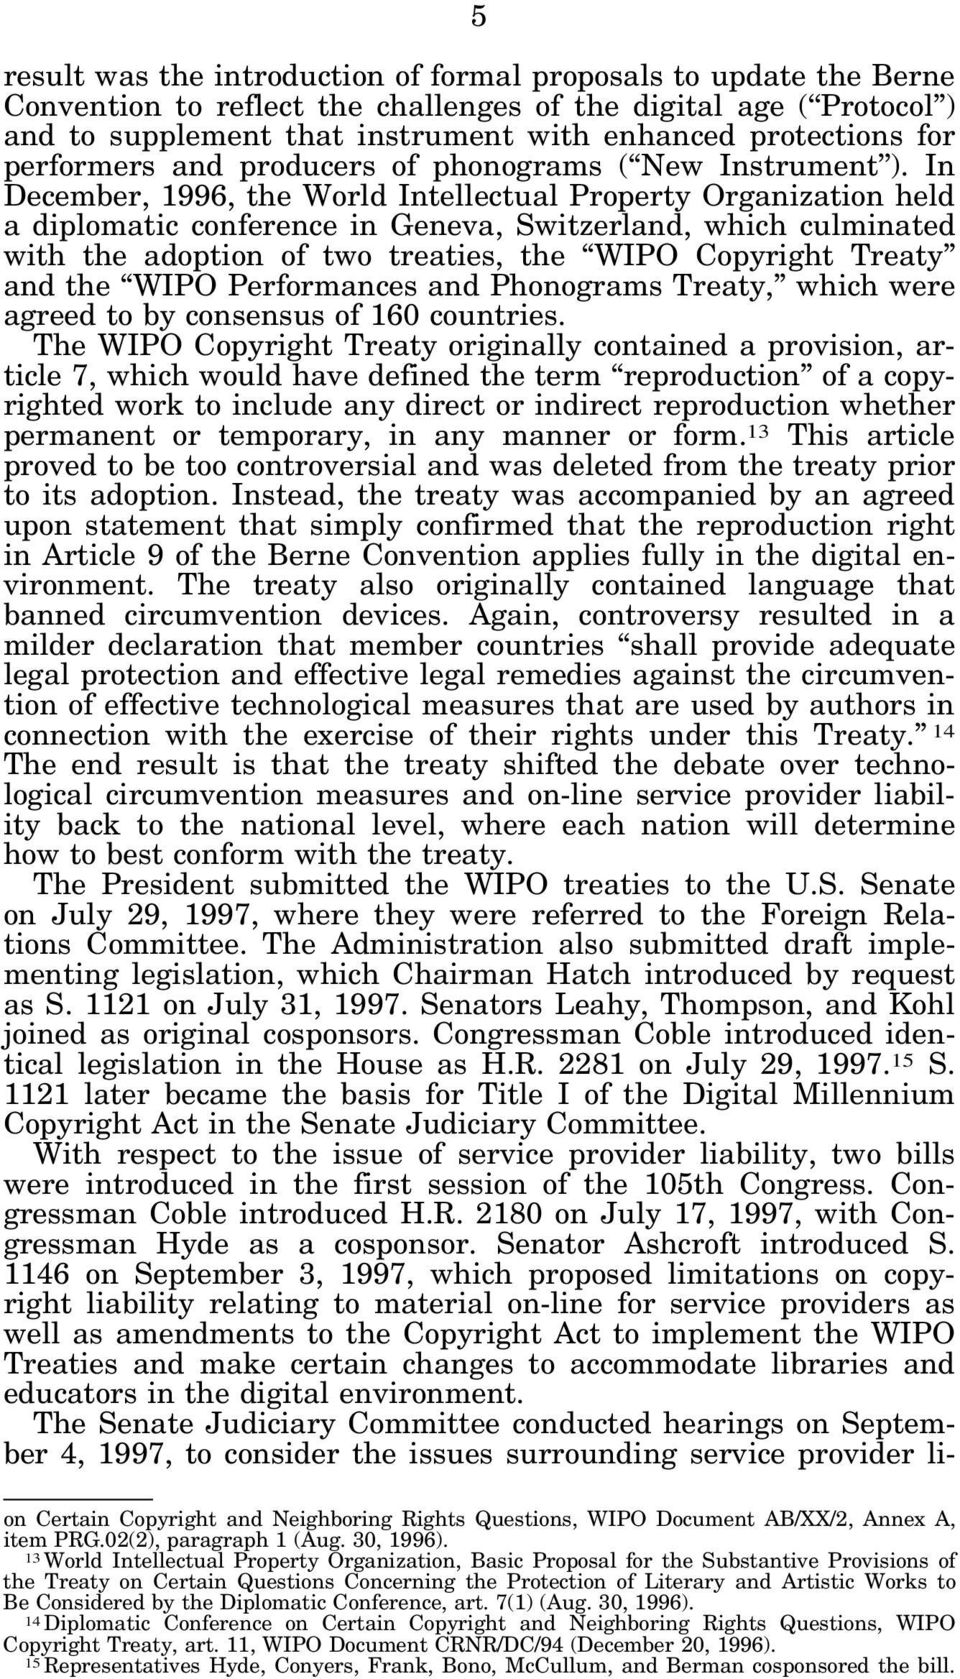 In December, 1996, the World Intellectual Property Organization held a diplomatic conference in Geneva, Switzerland, which culminated with the adoption of two treaties, the WIPO Copyright Treaty and